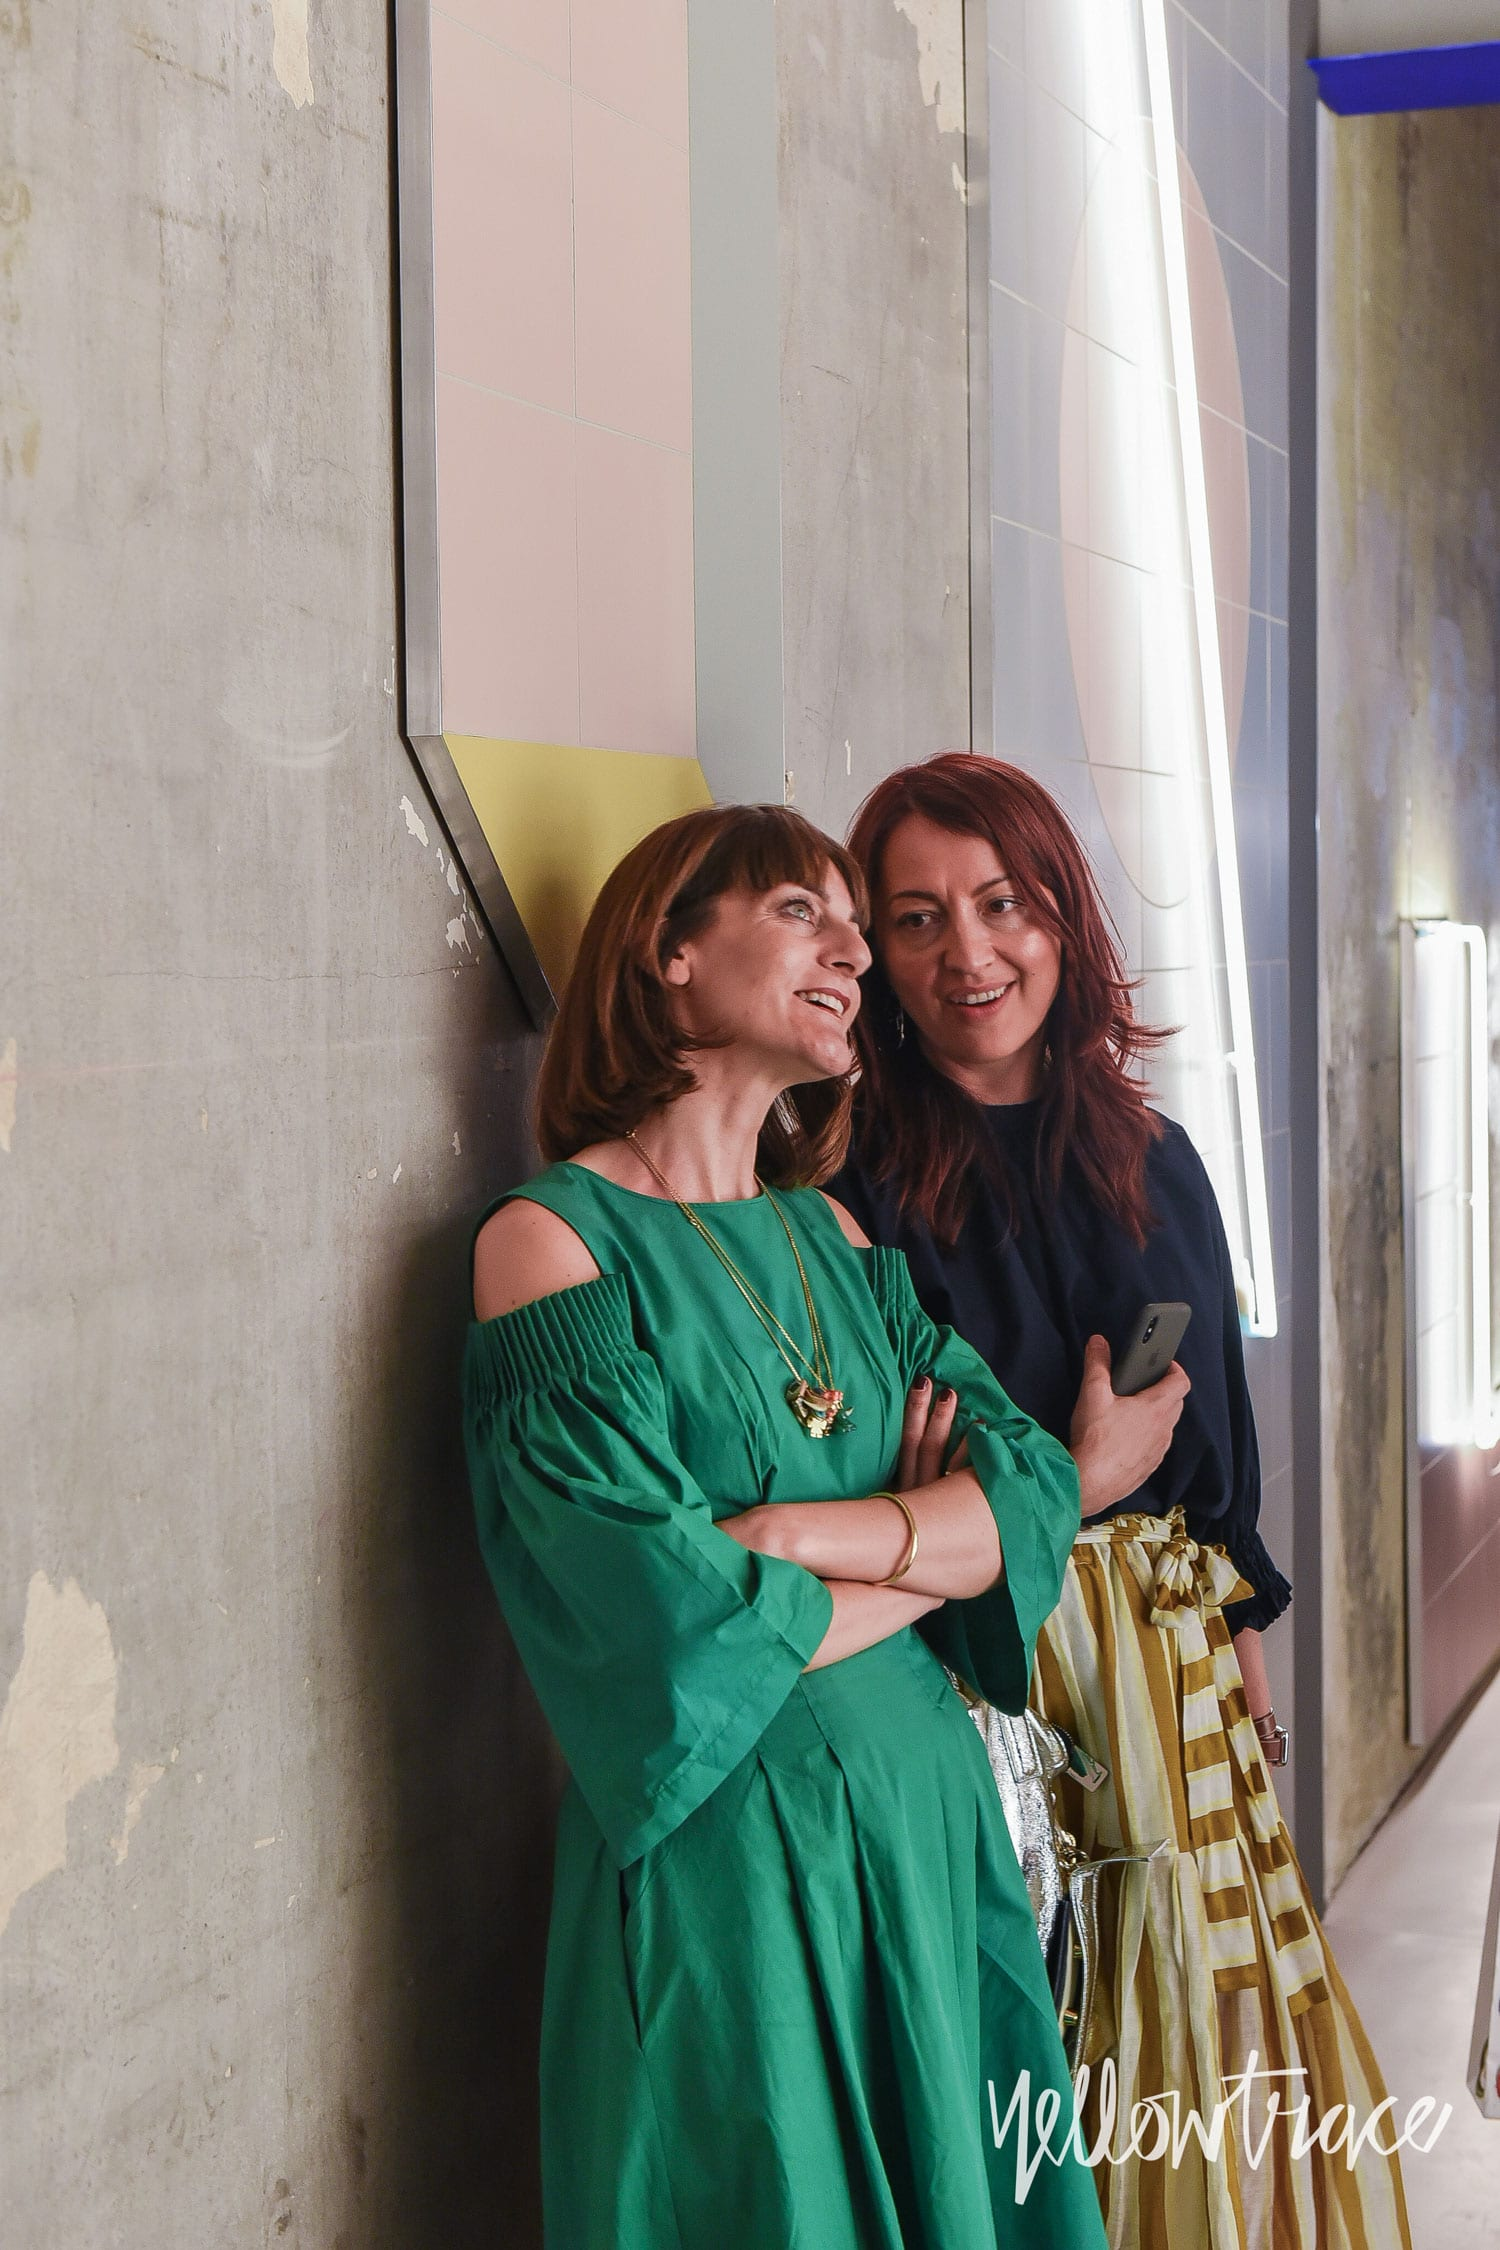 Dana Tomic Hughes, Yellowtrace and Arianna Lelli Mami, Studiopepe at Clubunseen, Milan Design Week 2018. Photo © Nick Hughes | #Milantrace2018